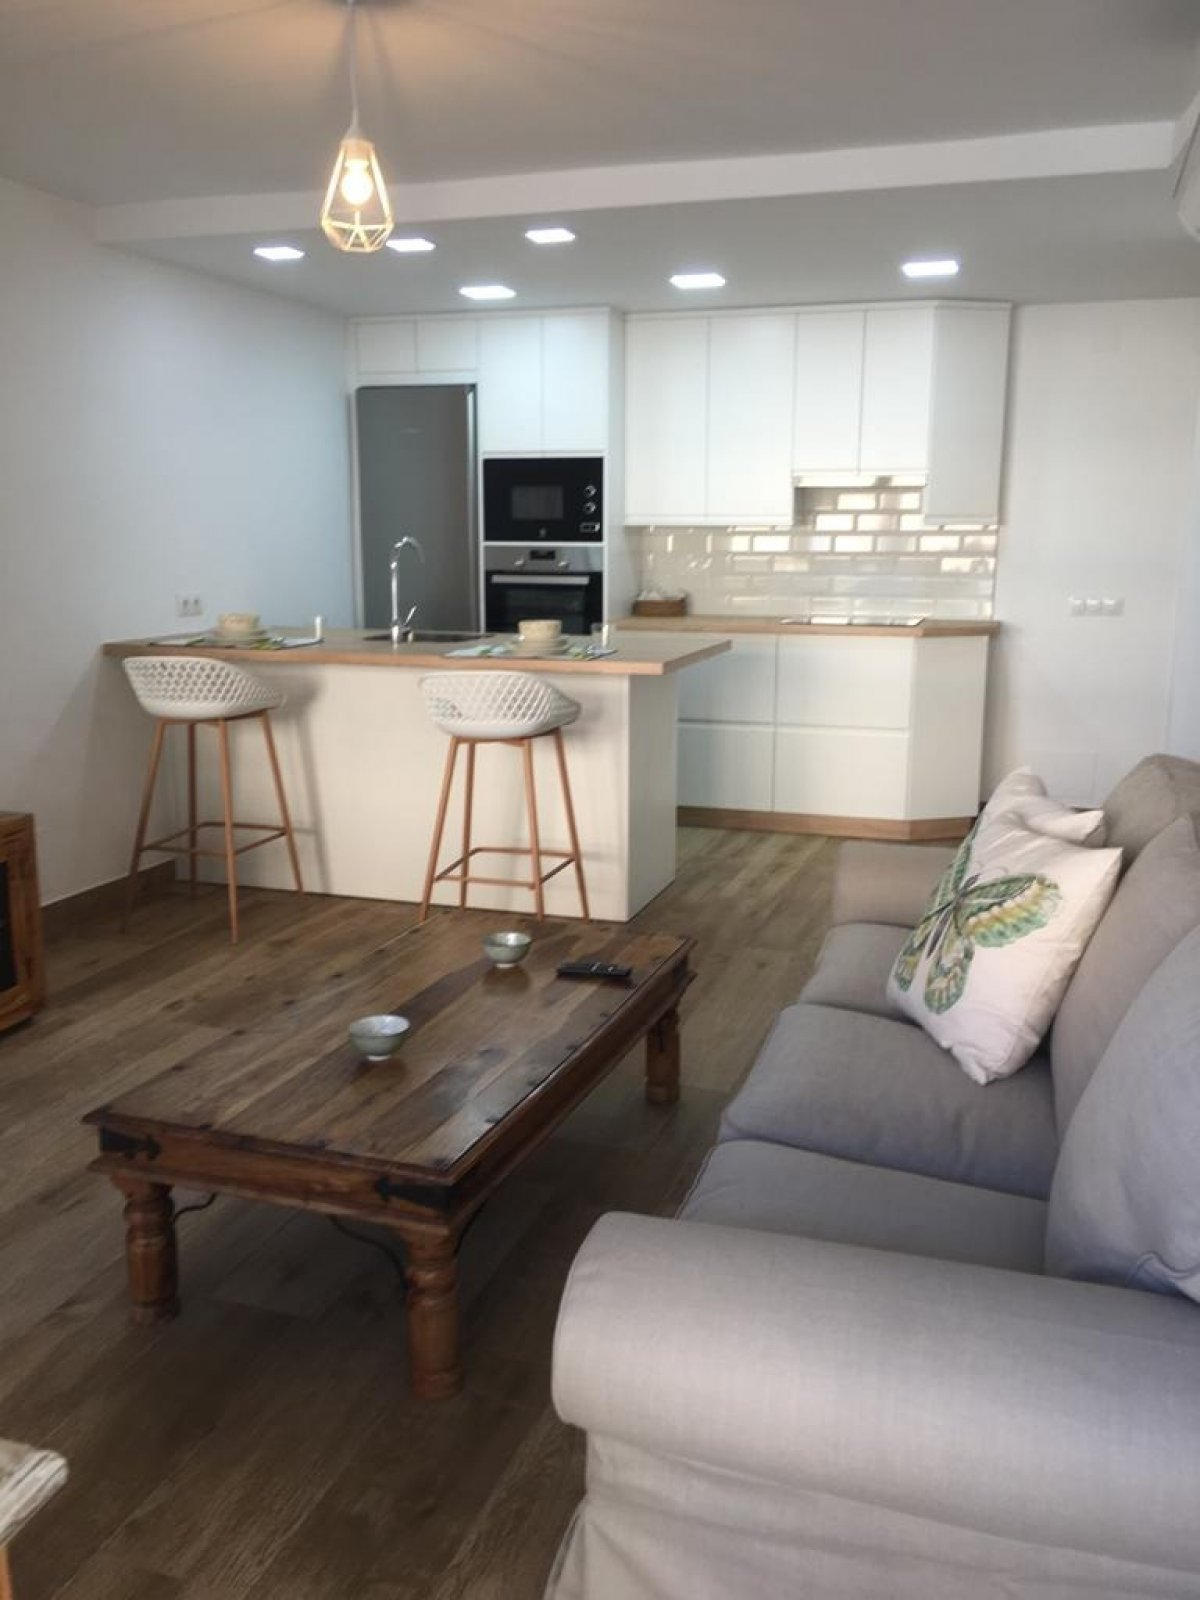 Flat for rent in Paseo marítimo-puerto, Fuengirola